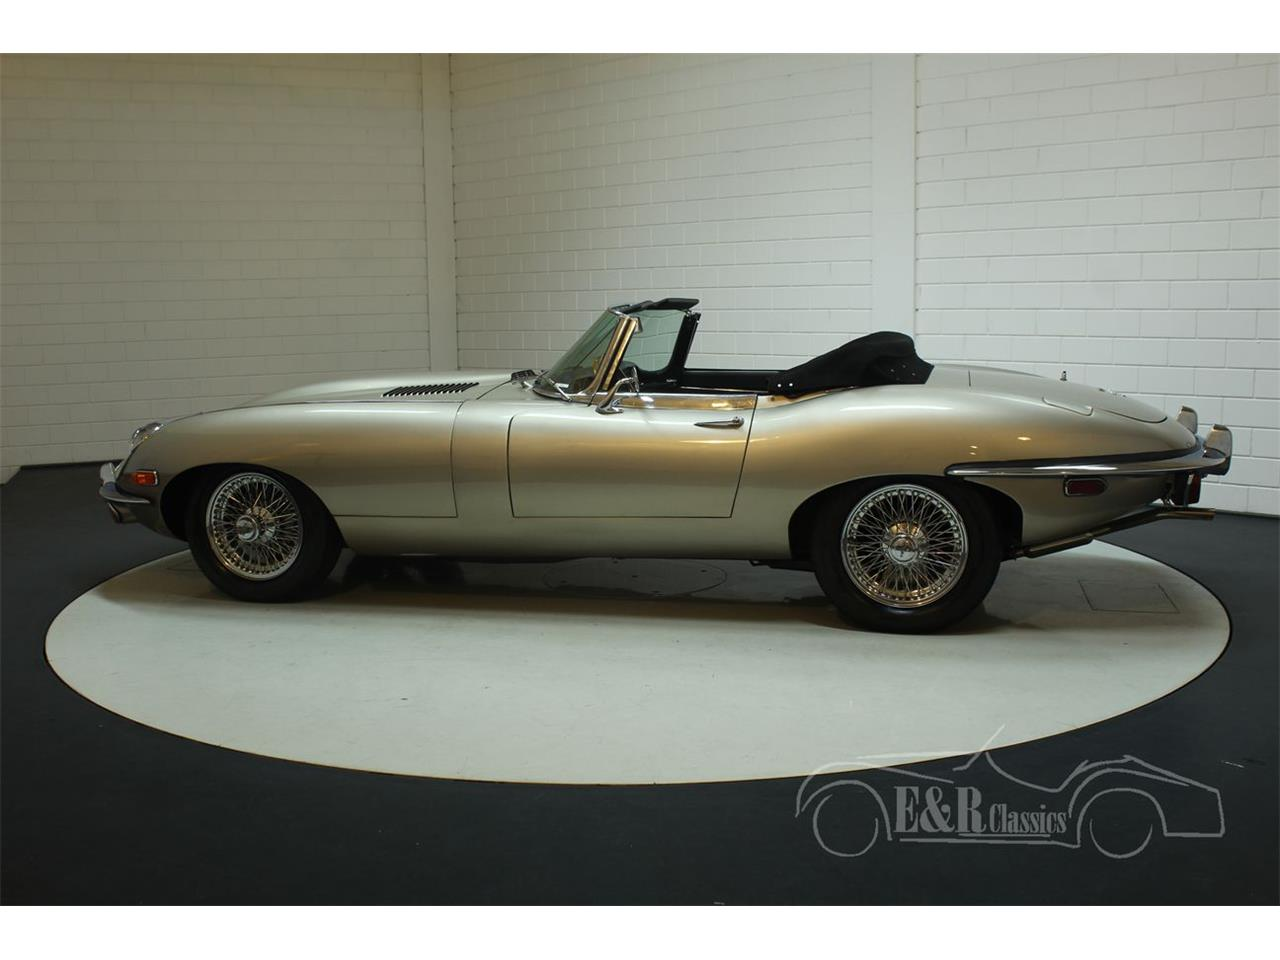 Large Picture of Classic 1970 E-Type located in - Keine Angabe - - $112,750.00 - PH40